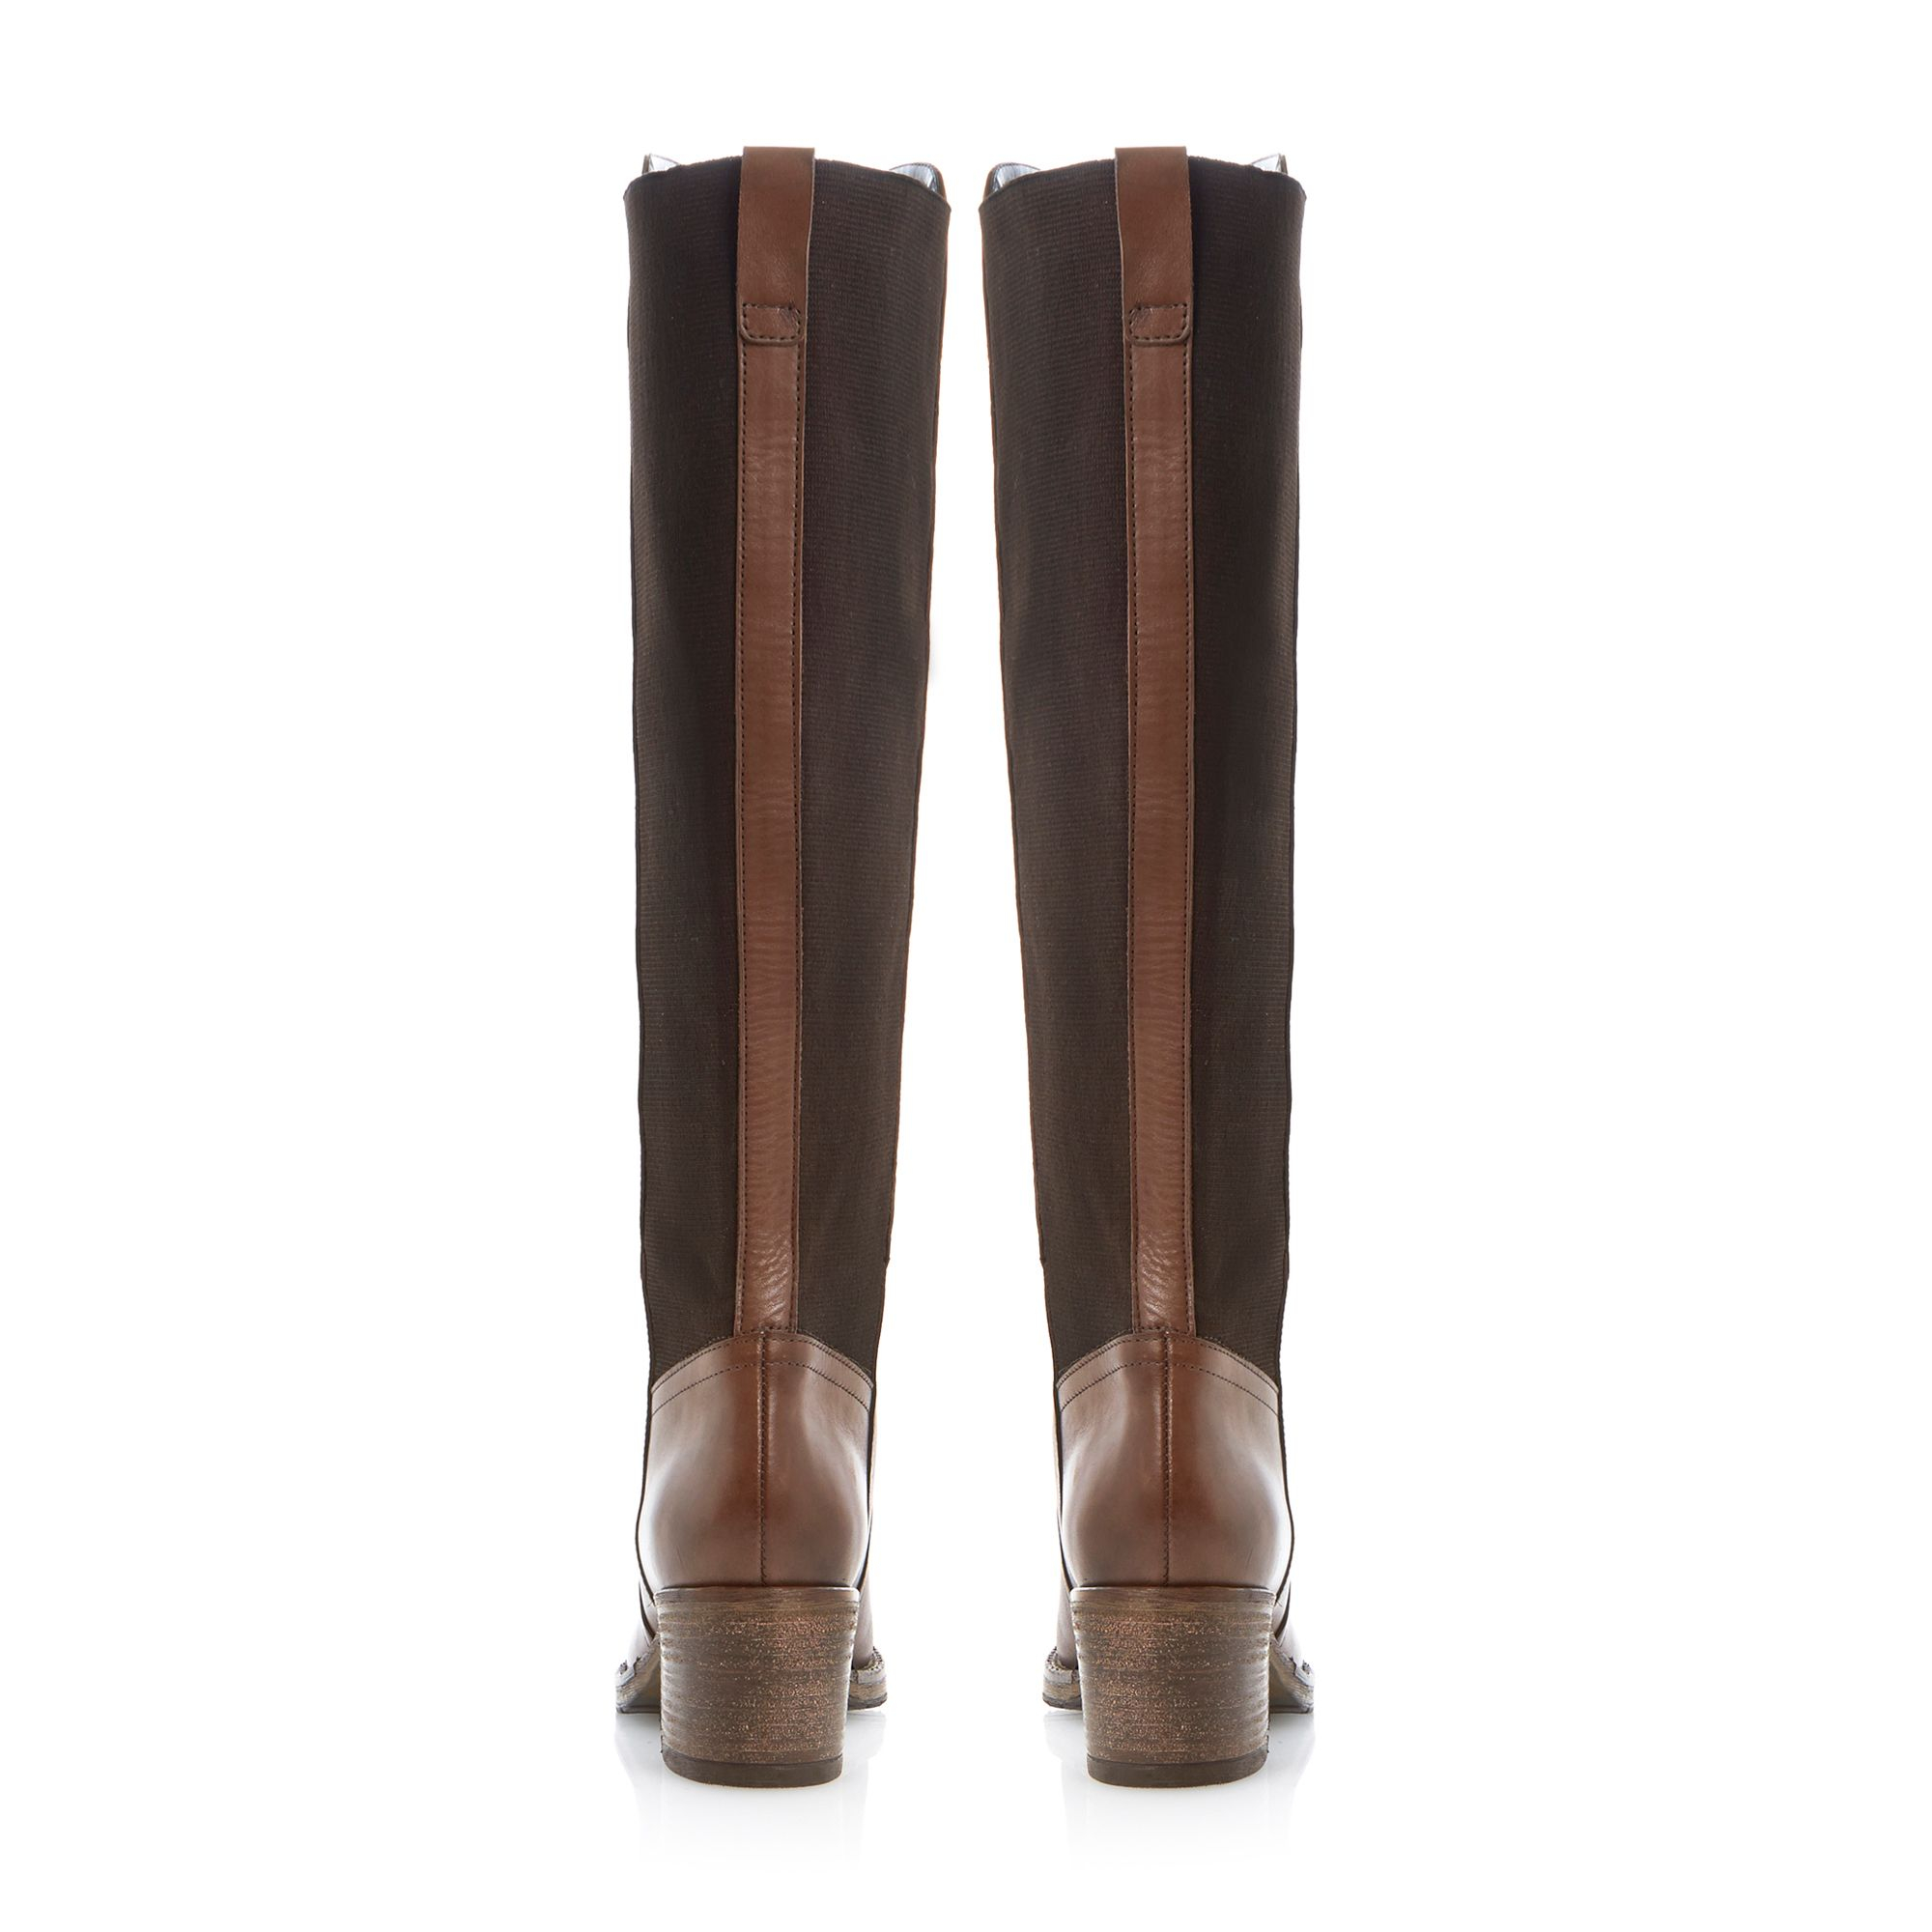 Bertie Tara Stretch Block Knee High Boots in Brown